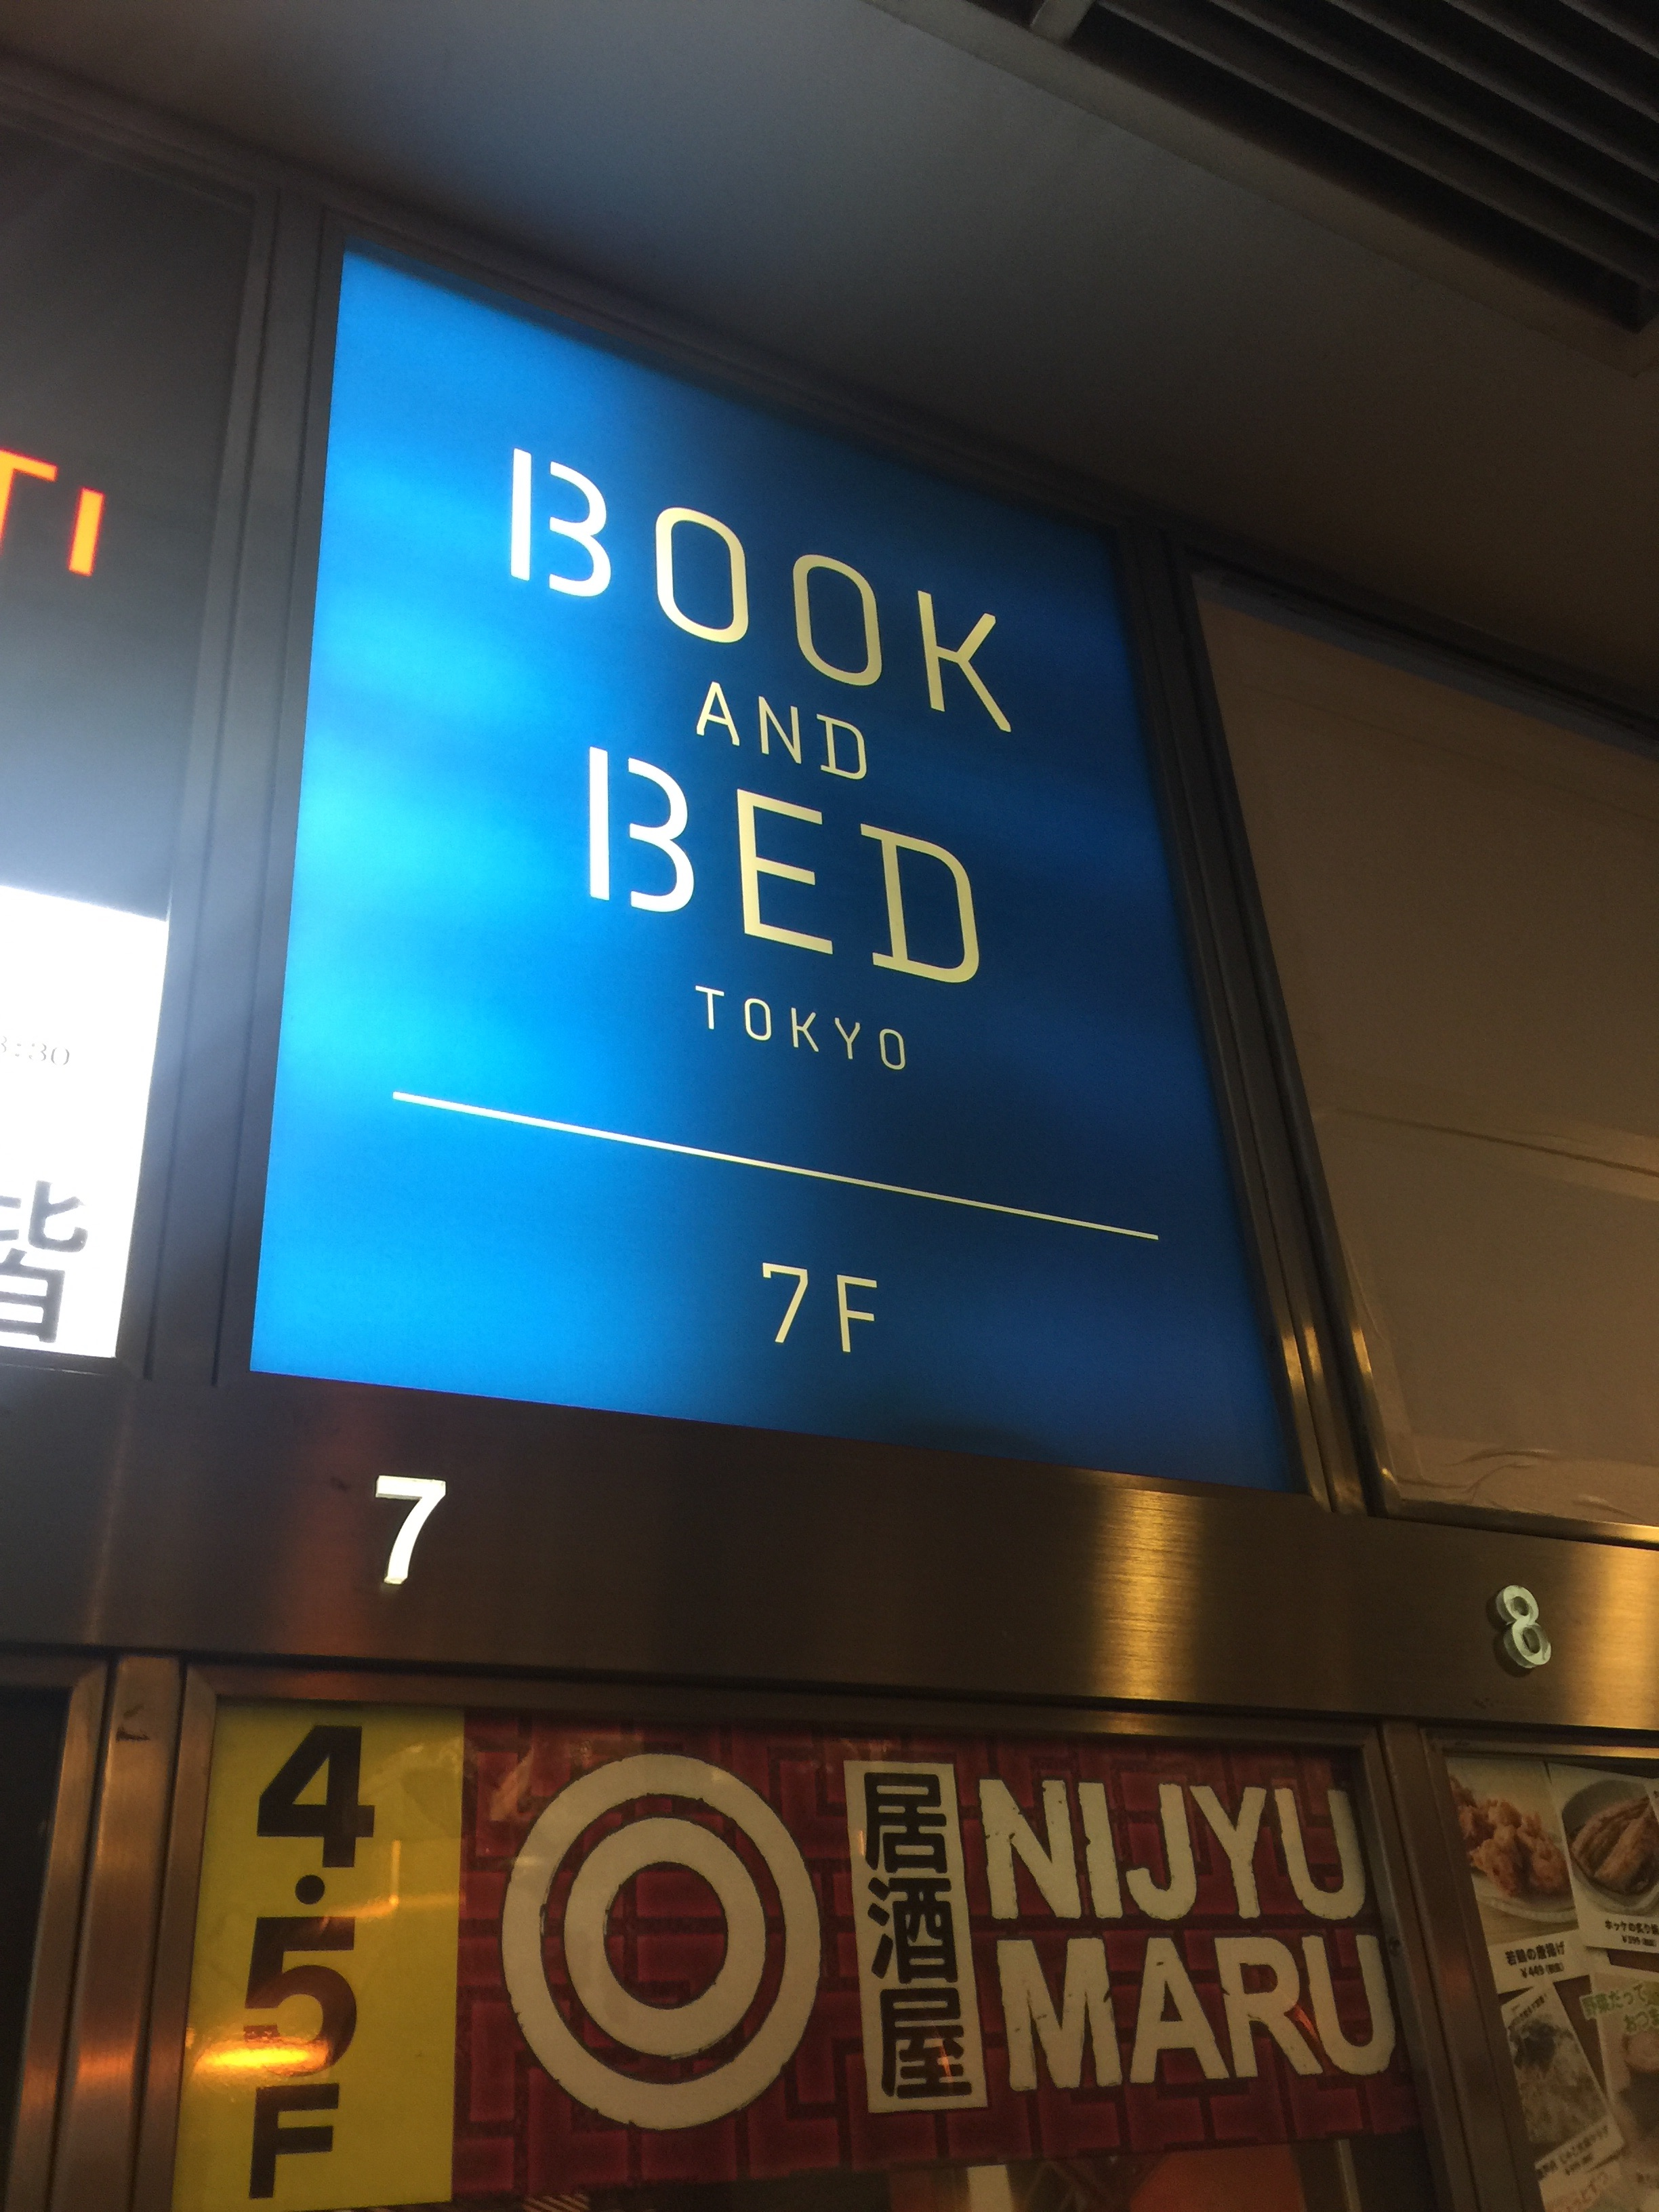 「BOOK AND BED TOKYO」 感想 入り口 場所